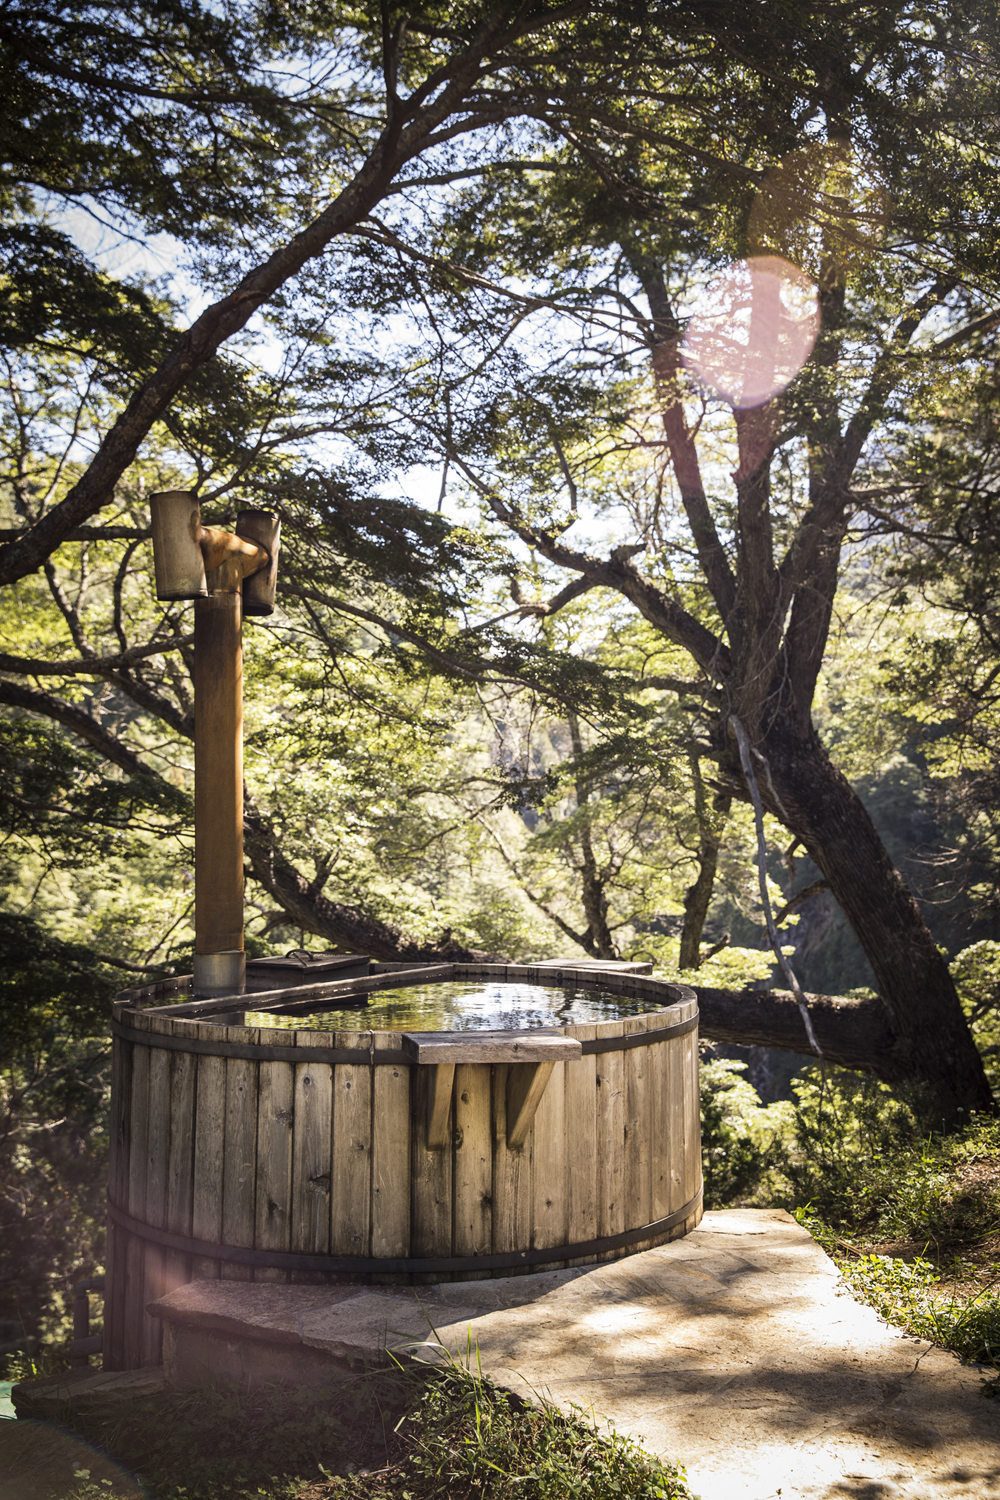 Wood-fired hot tubs at La Confluencia